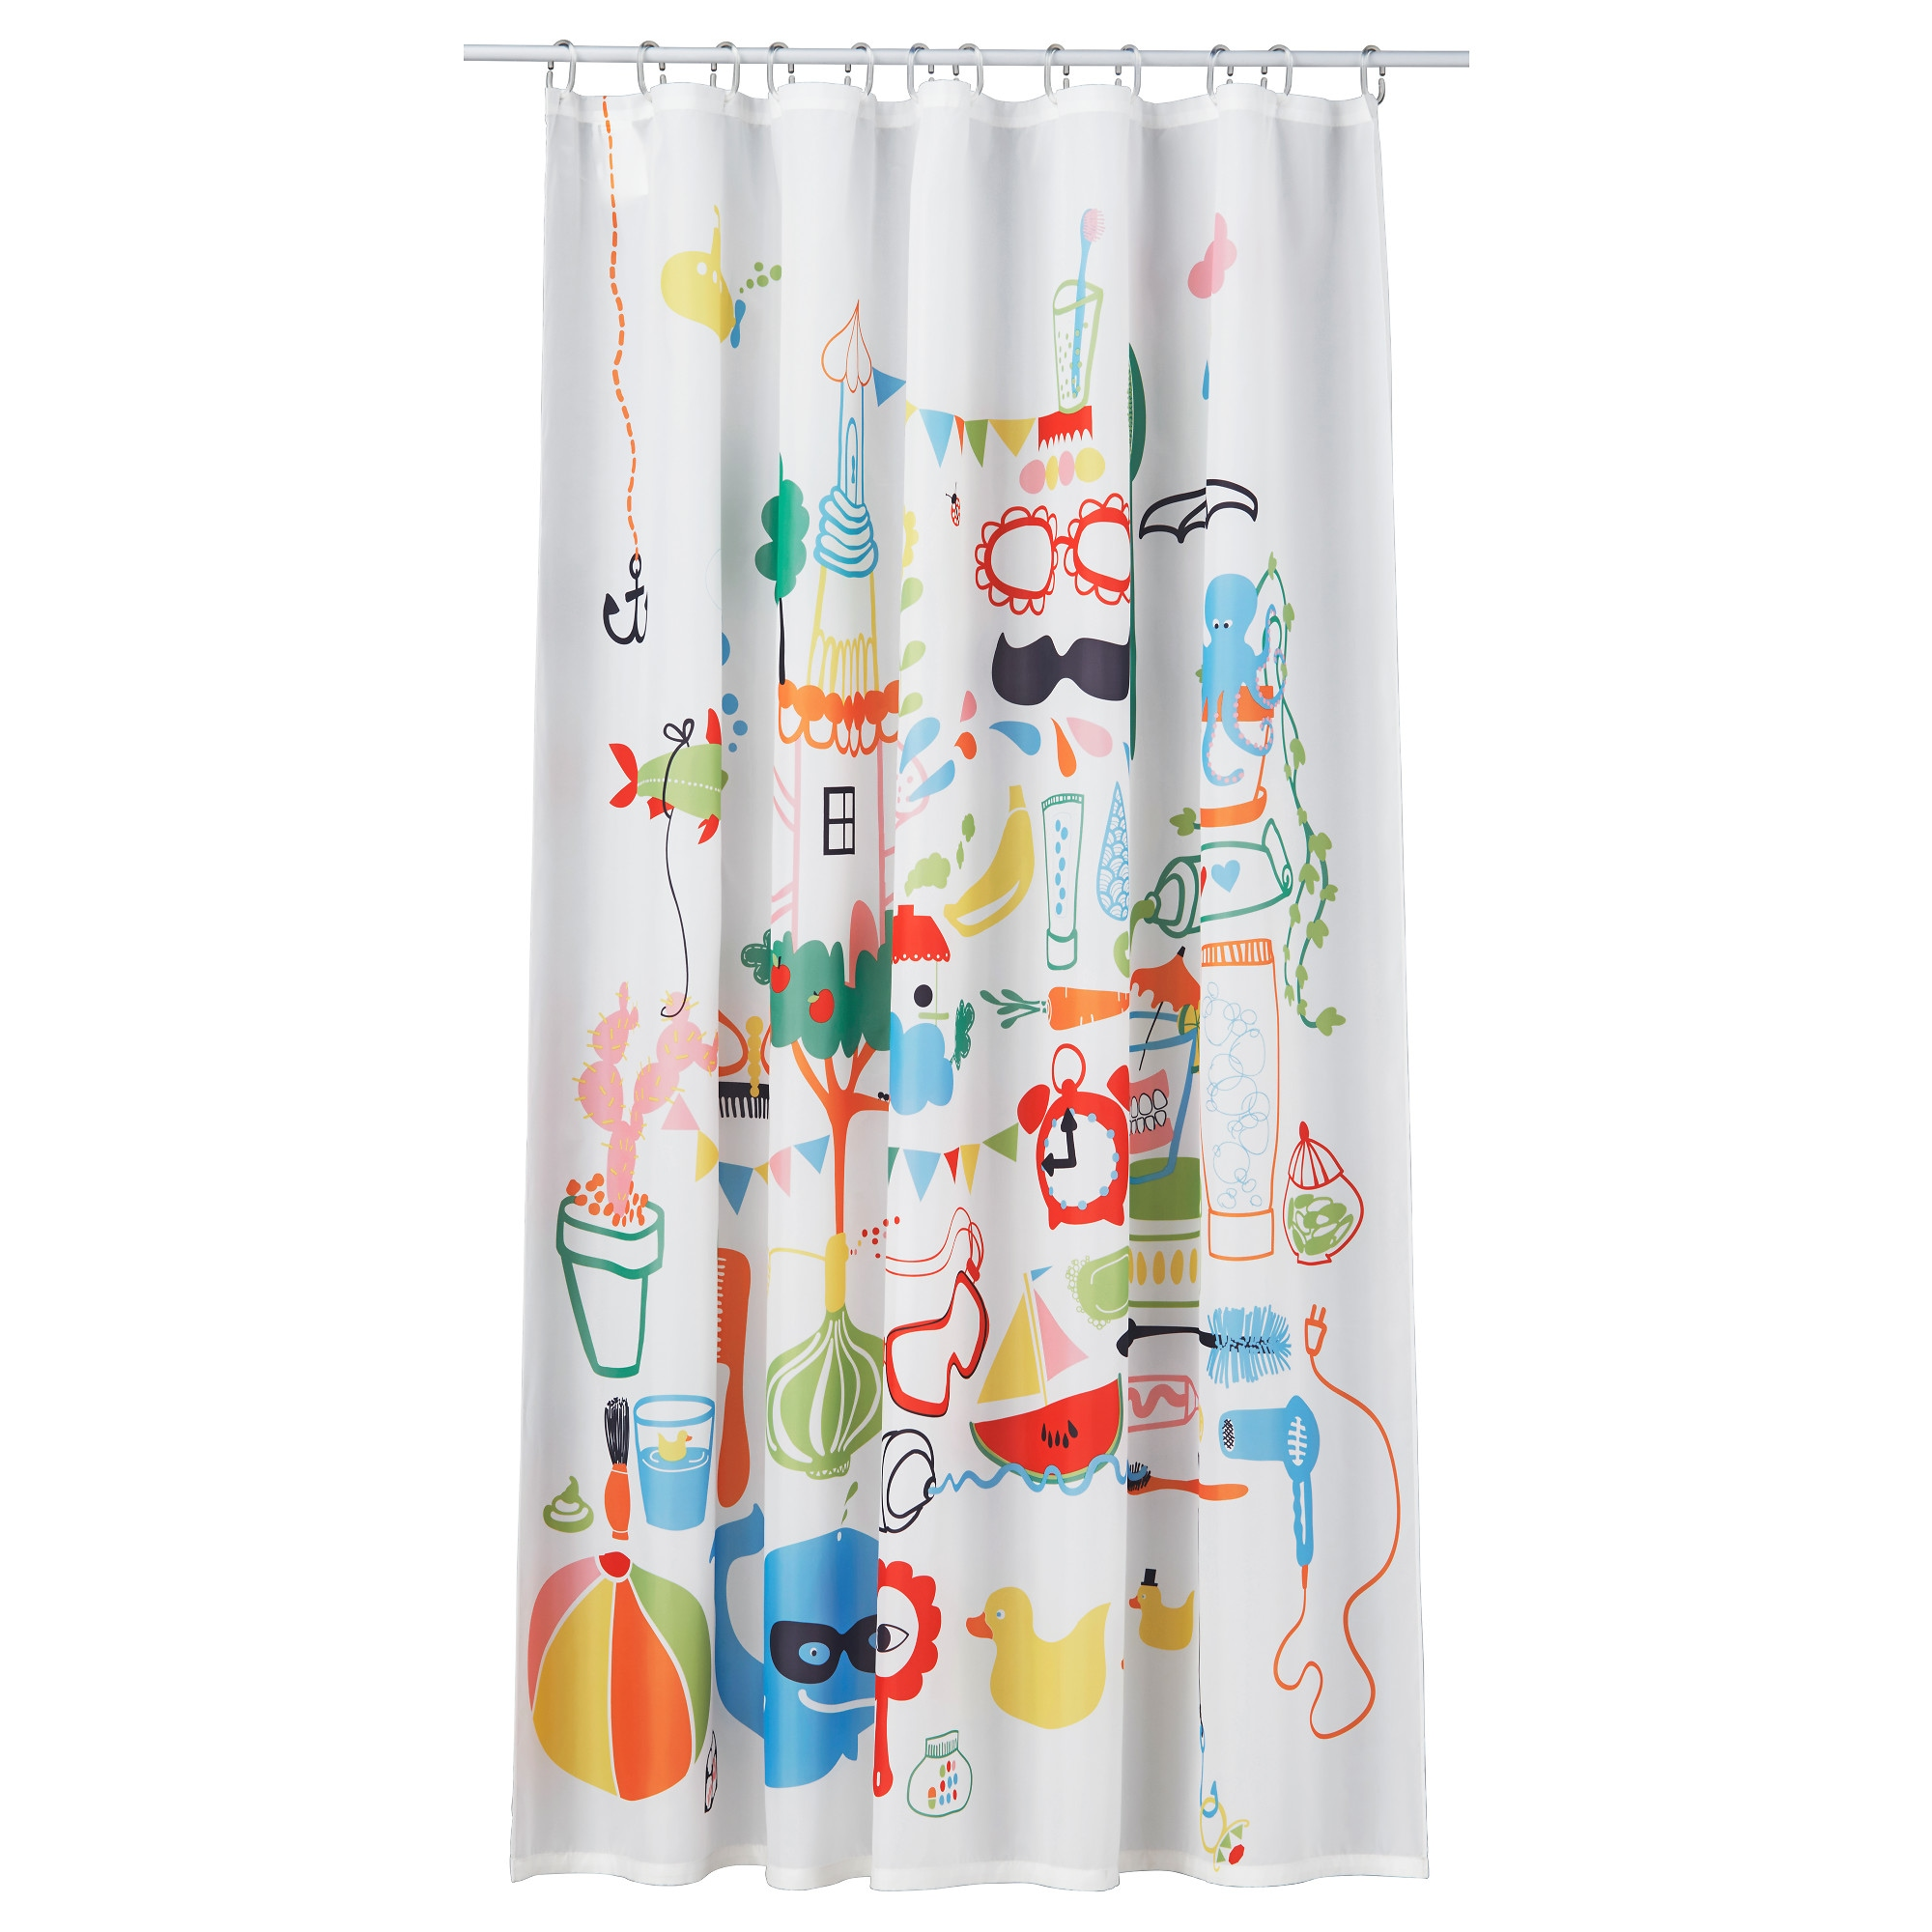 BADBÄCK Shower curtain - IKEA